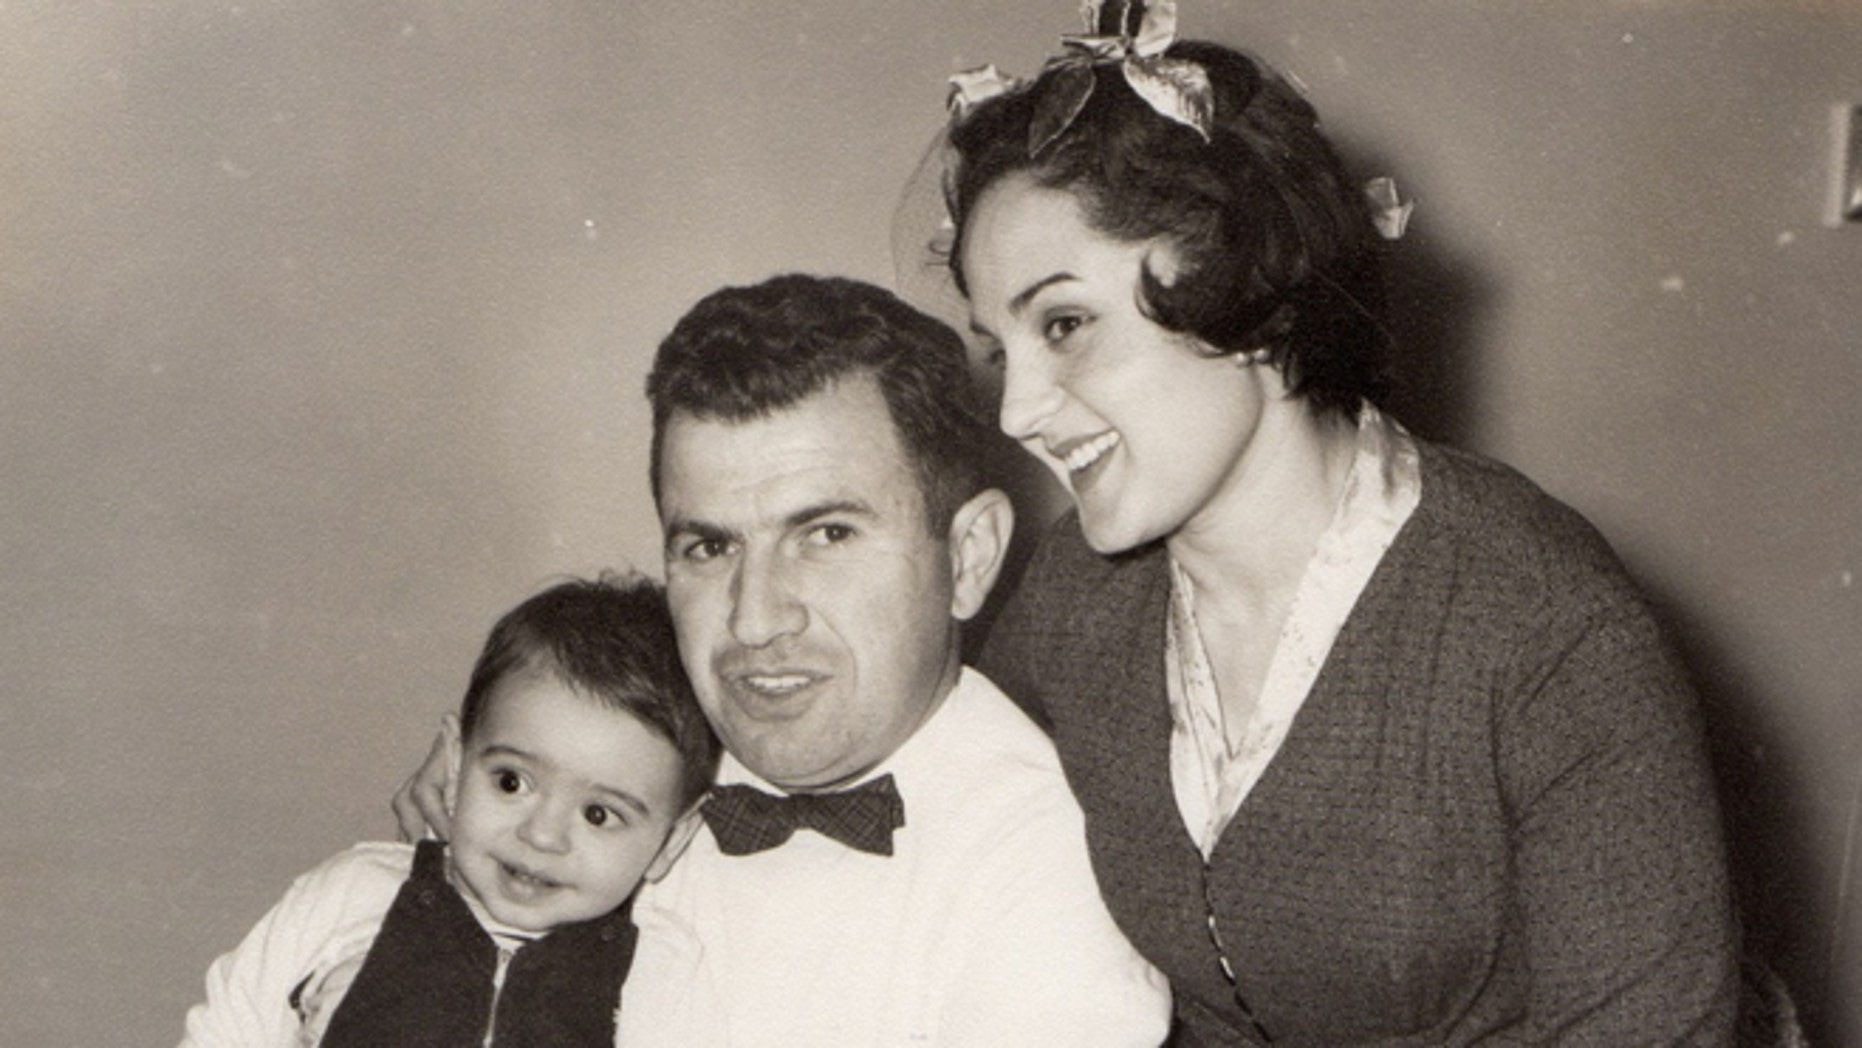 Alberto Vourvoulias-Bush (left) with his father, Jason L. Vourvoulias, and mother, Joyce Bush Vourvoulias in Mexico City in 1959. (Photo: Courtesy of Alberto Vourvoulias-Bush)